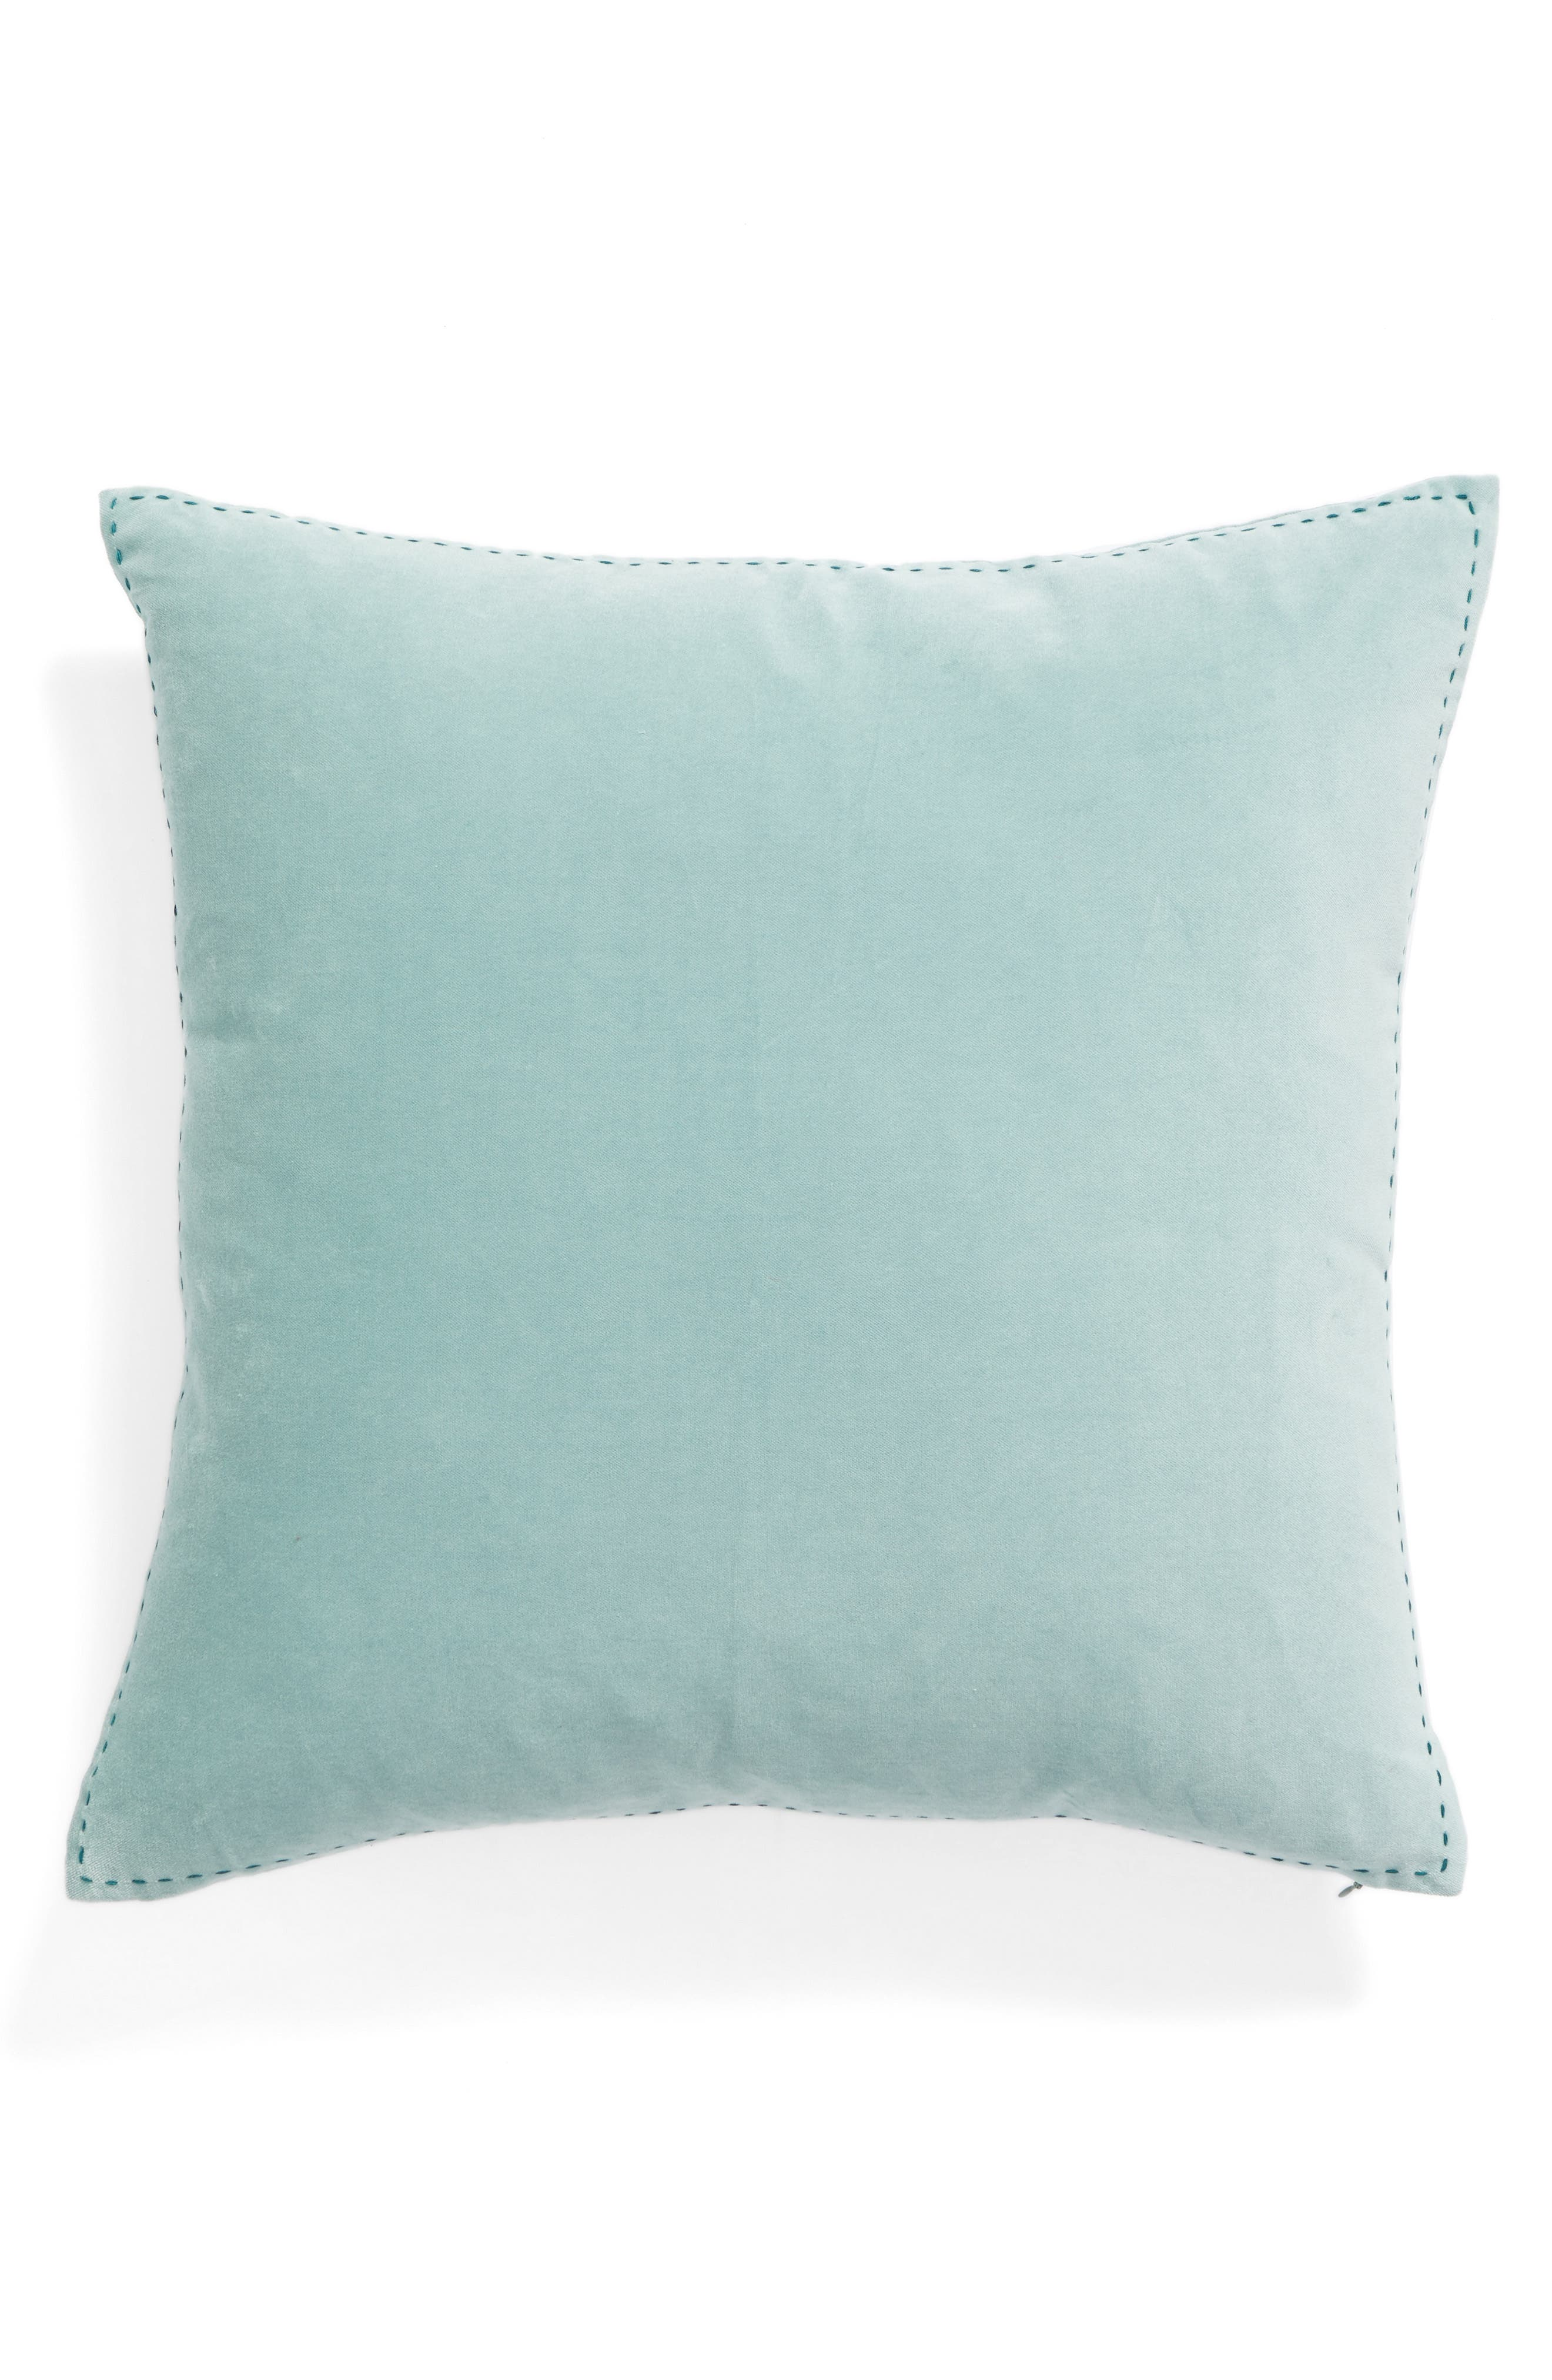 Alternate Image 1 Selected - Nordstrom at Home Ticking Border Accent Pillow